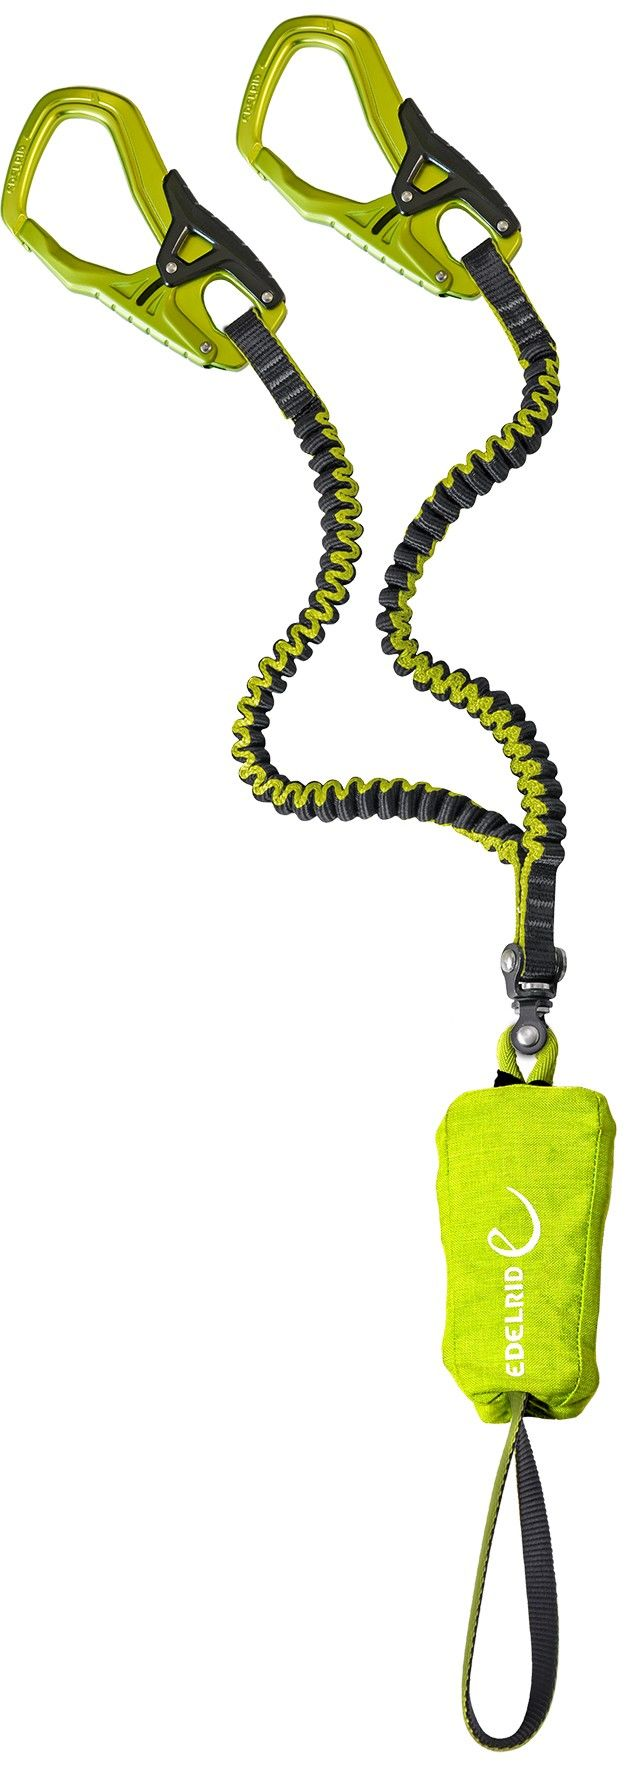 Edelrid Cable Comfort 5.0 Grün, One Size -Farbe Oasis, One Size